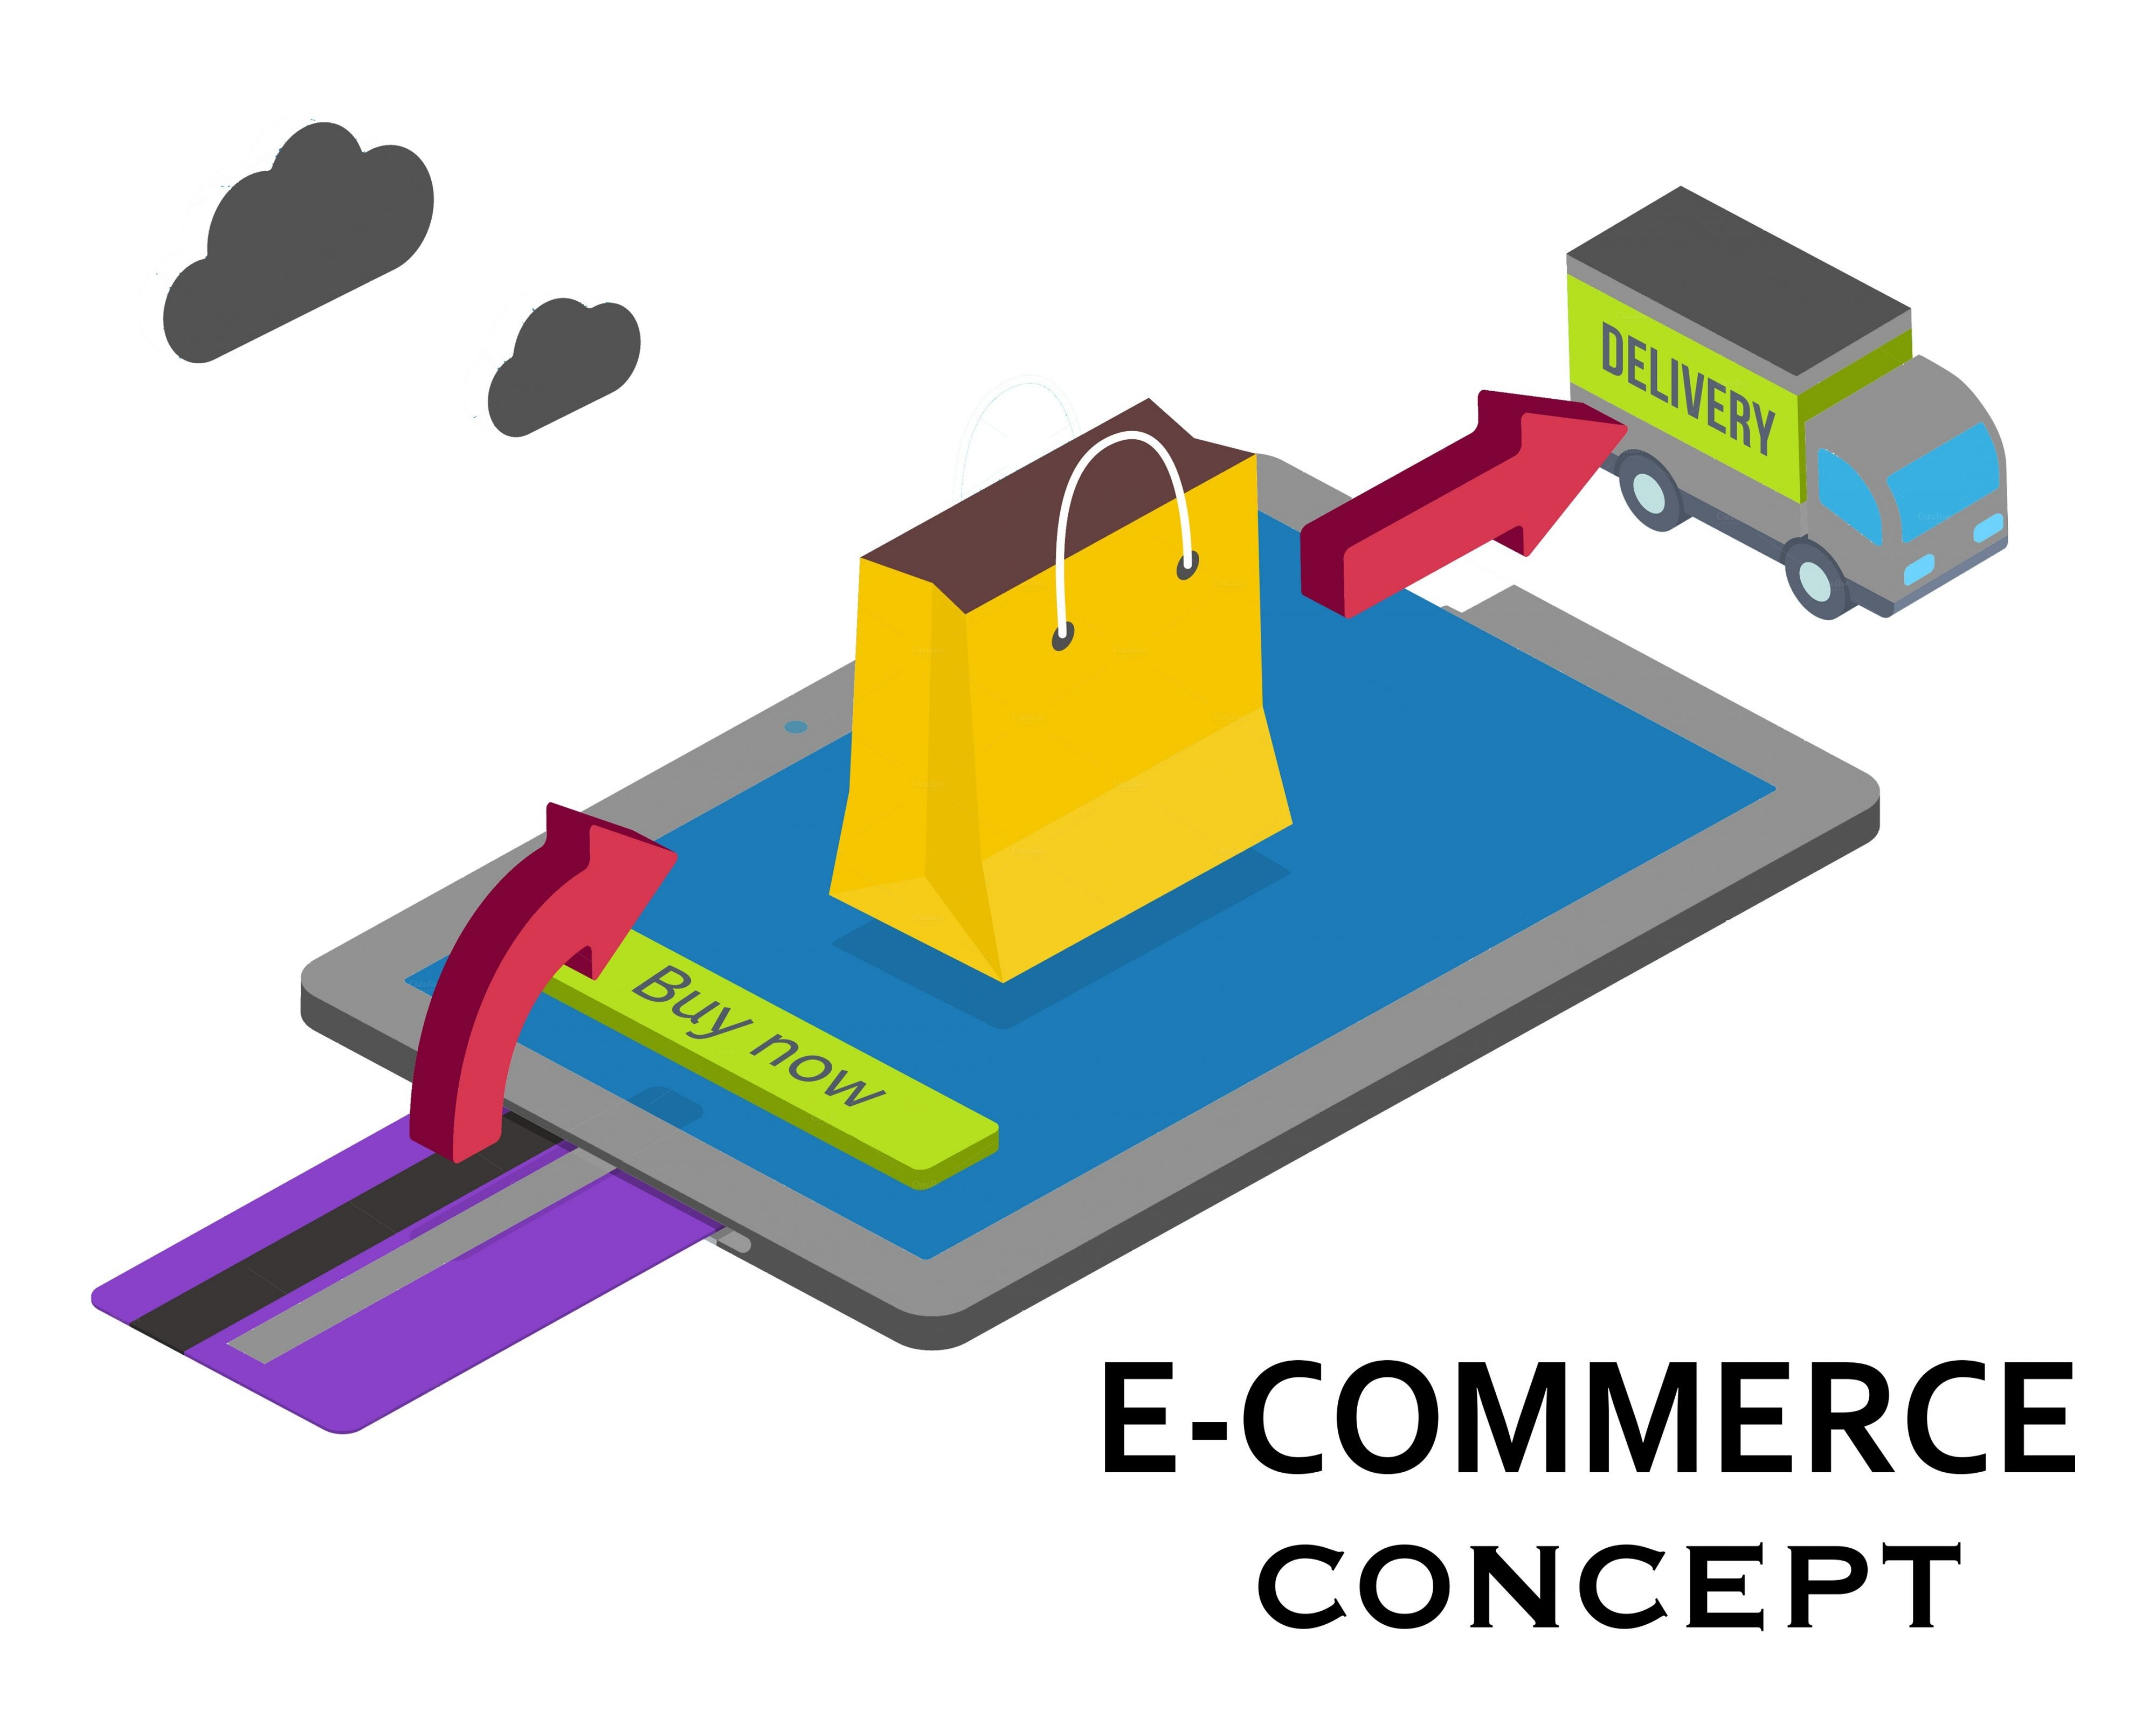 E-commerce or internet shopping concept with a credit card for payment and an arrow pointing to a shopping bag on a tablet computer screen leading to a delivery truck  vector illustration